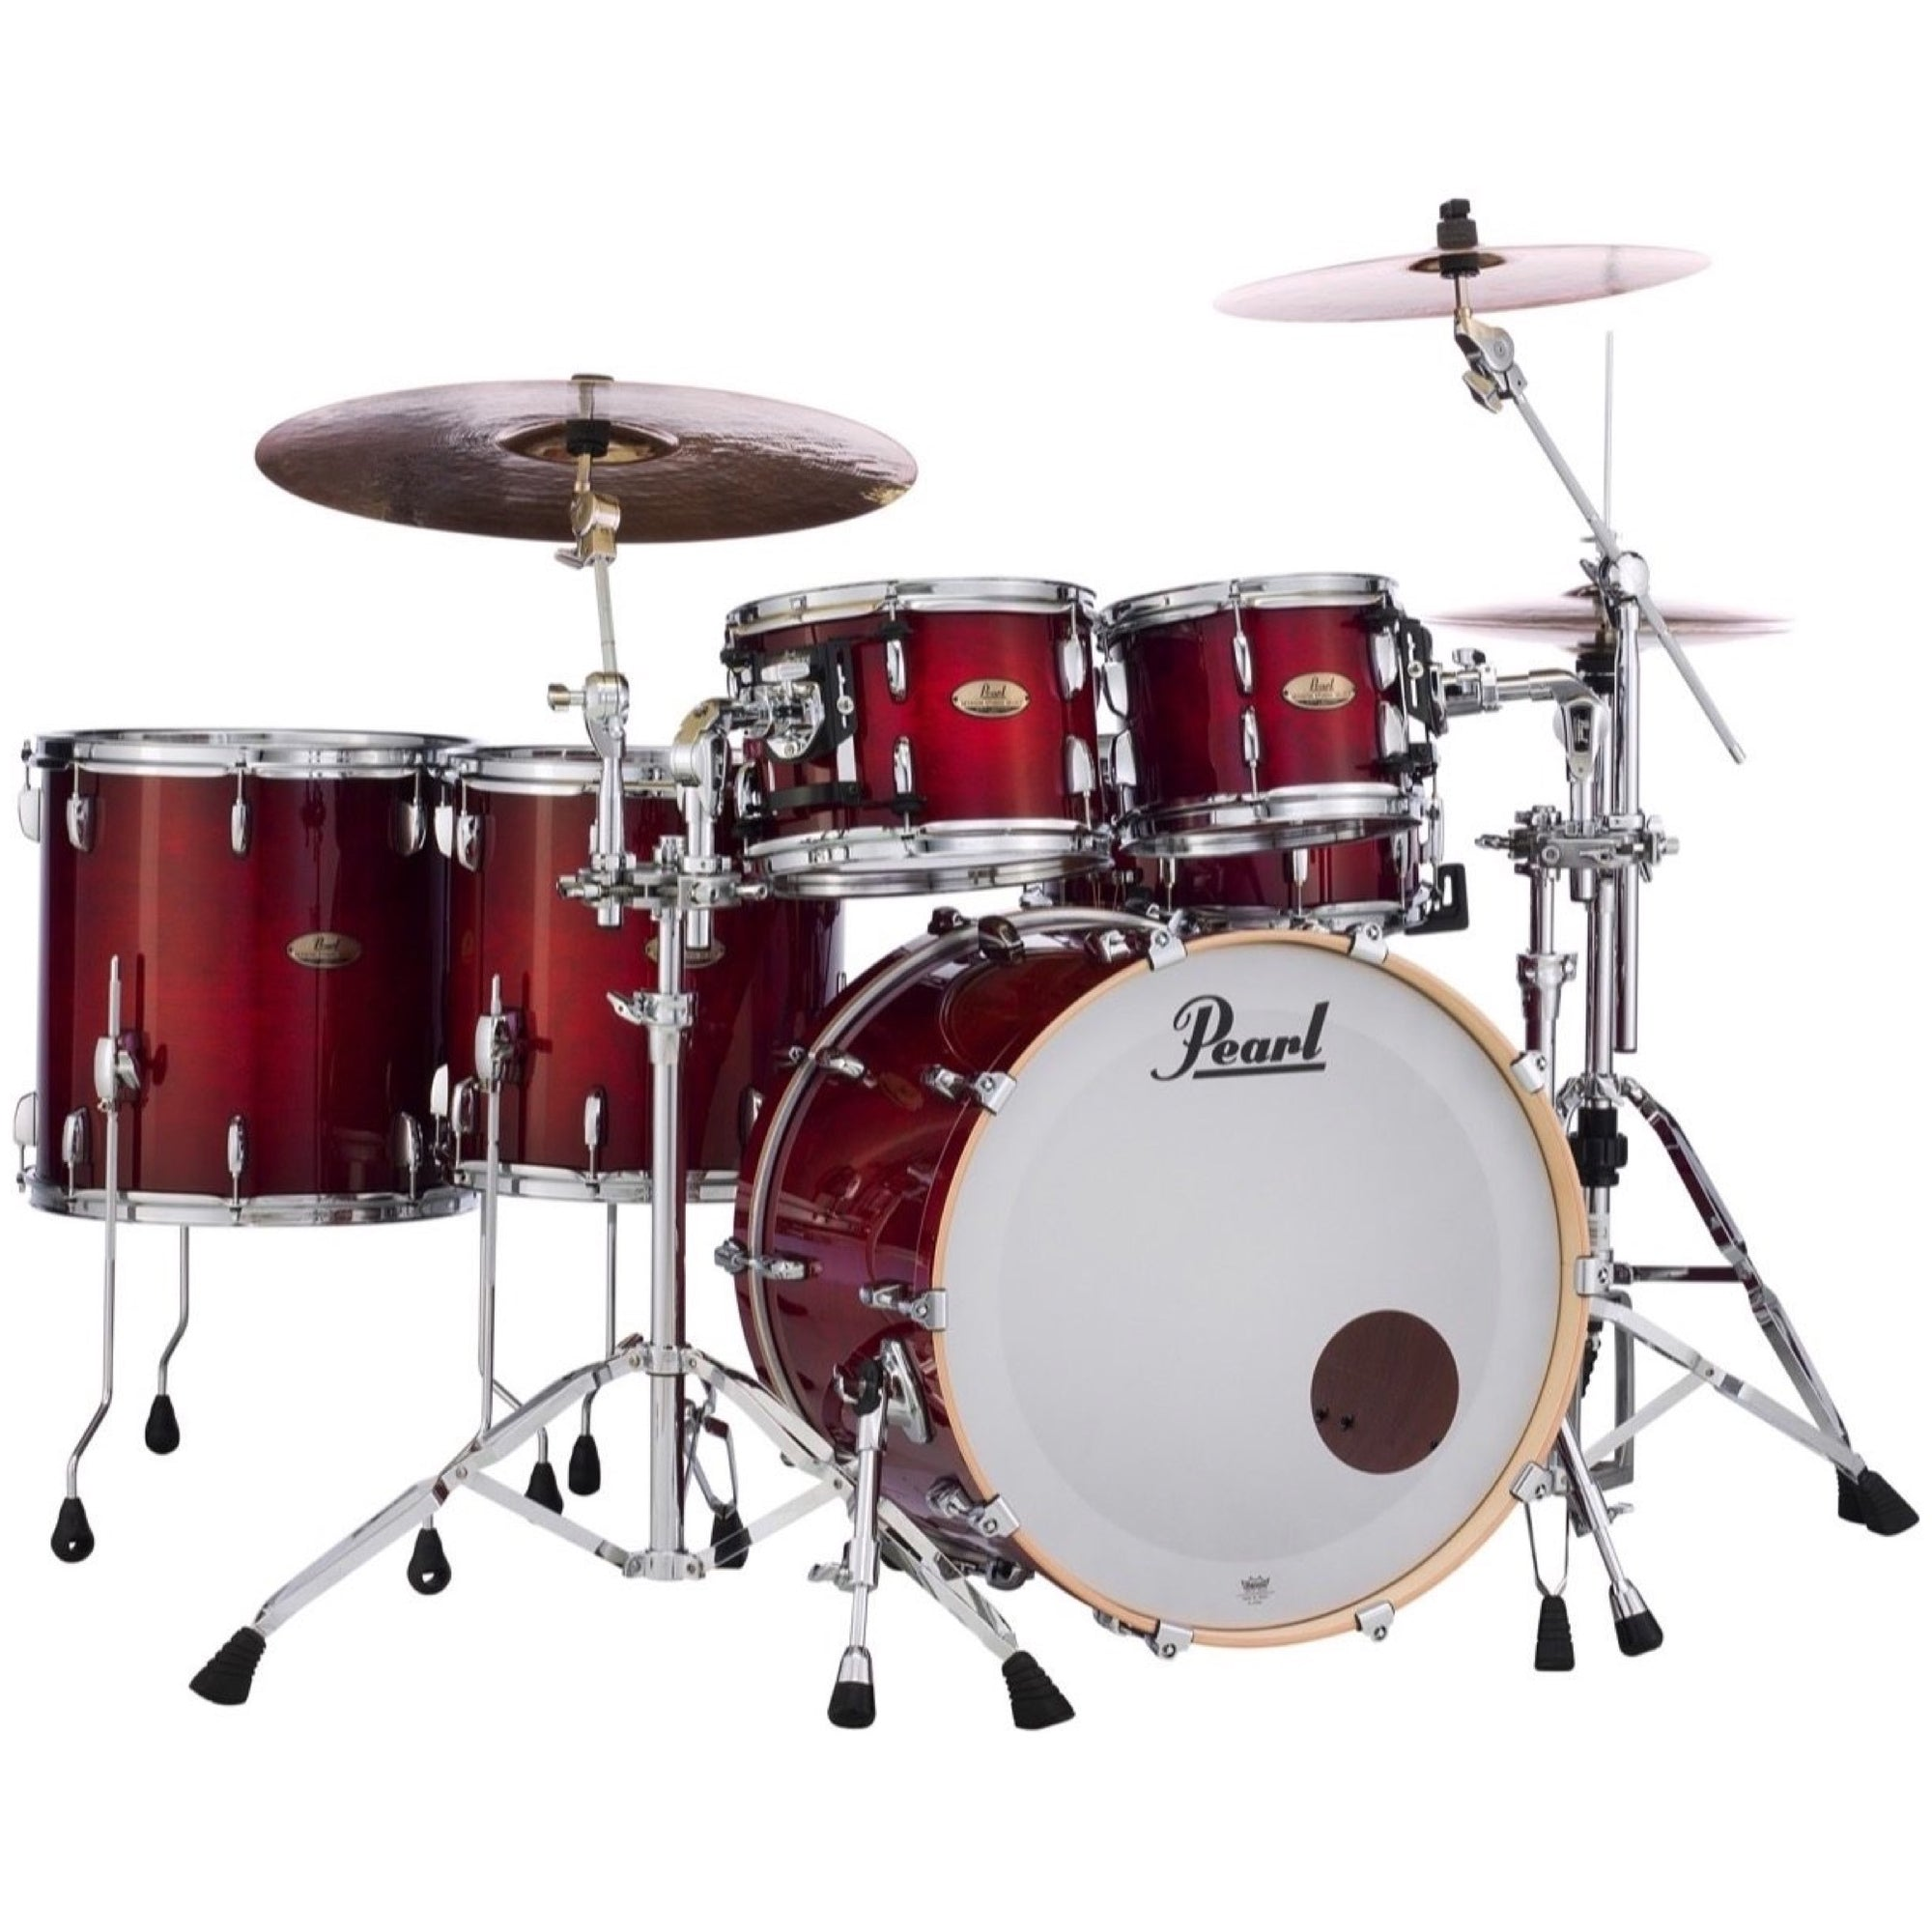 Pearl Session Studio Select Drum Shell Kit, 5-Piece, Antique Crimson Burst